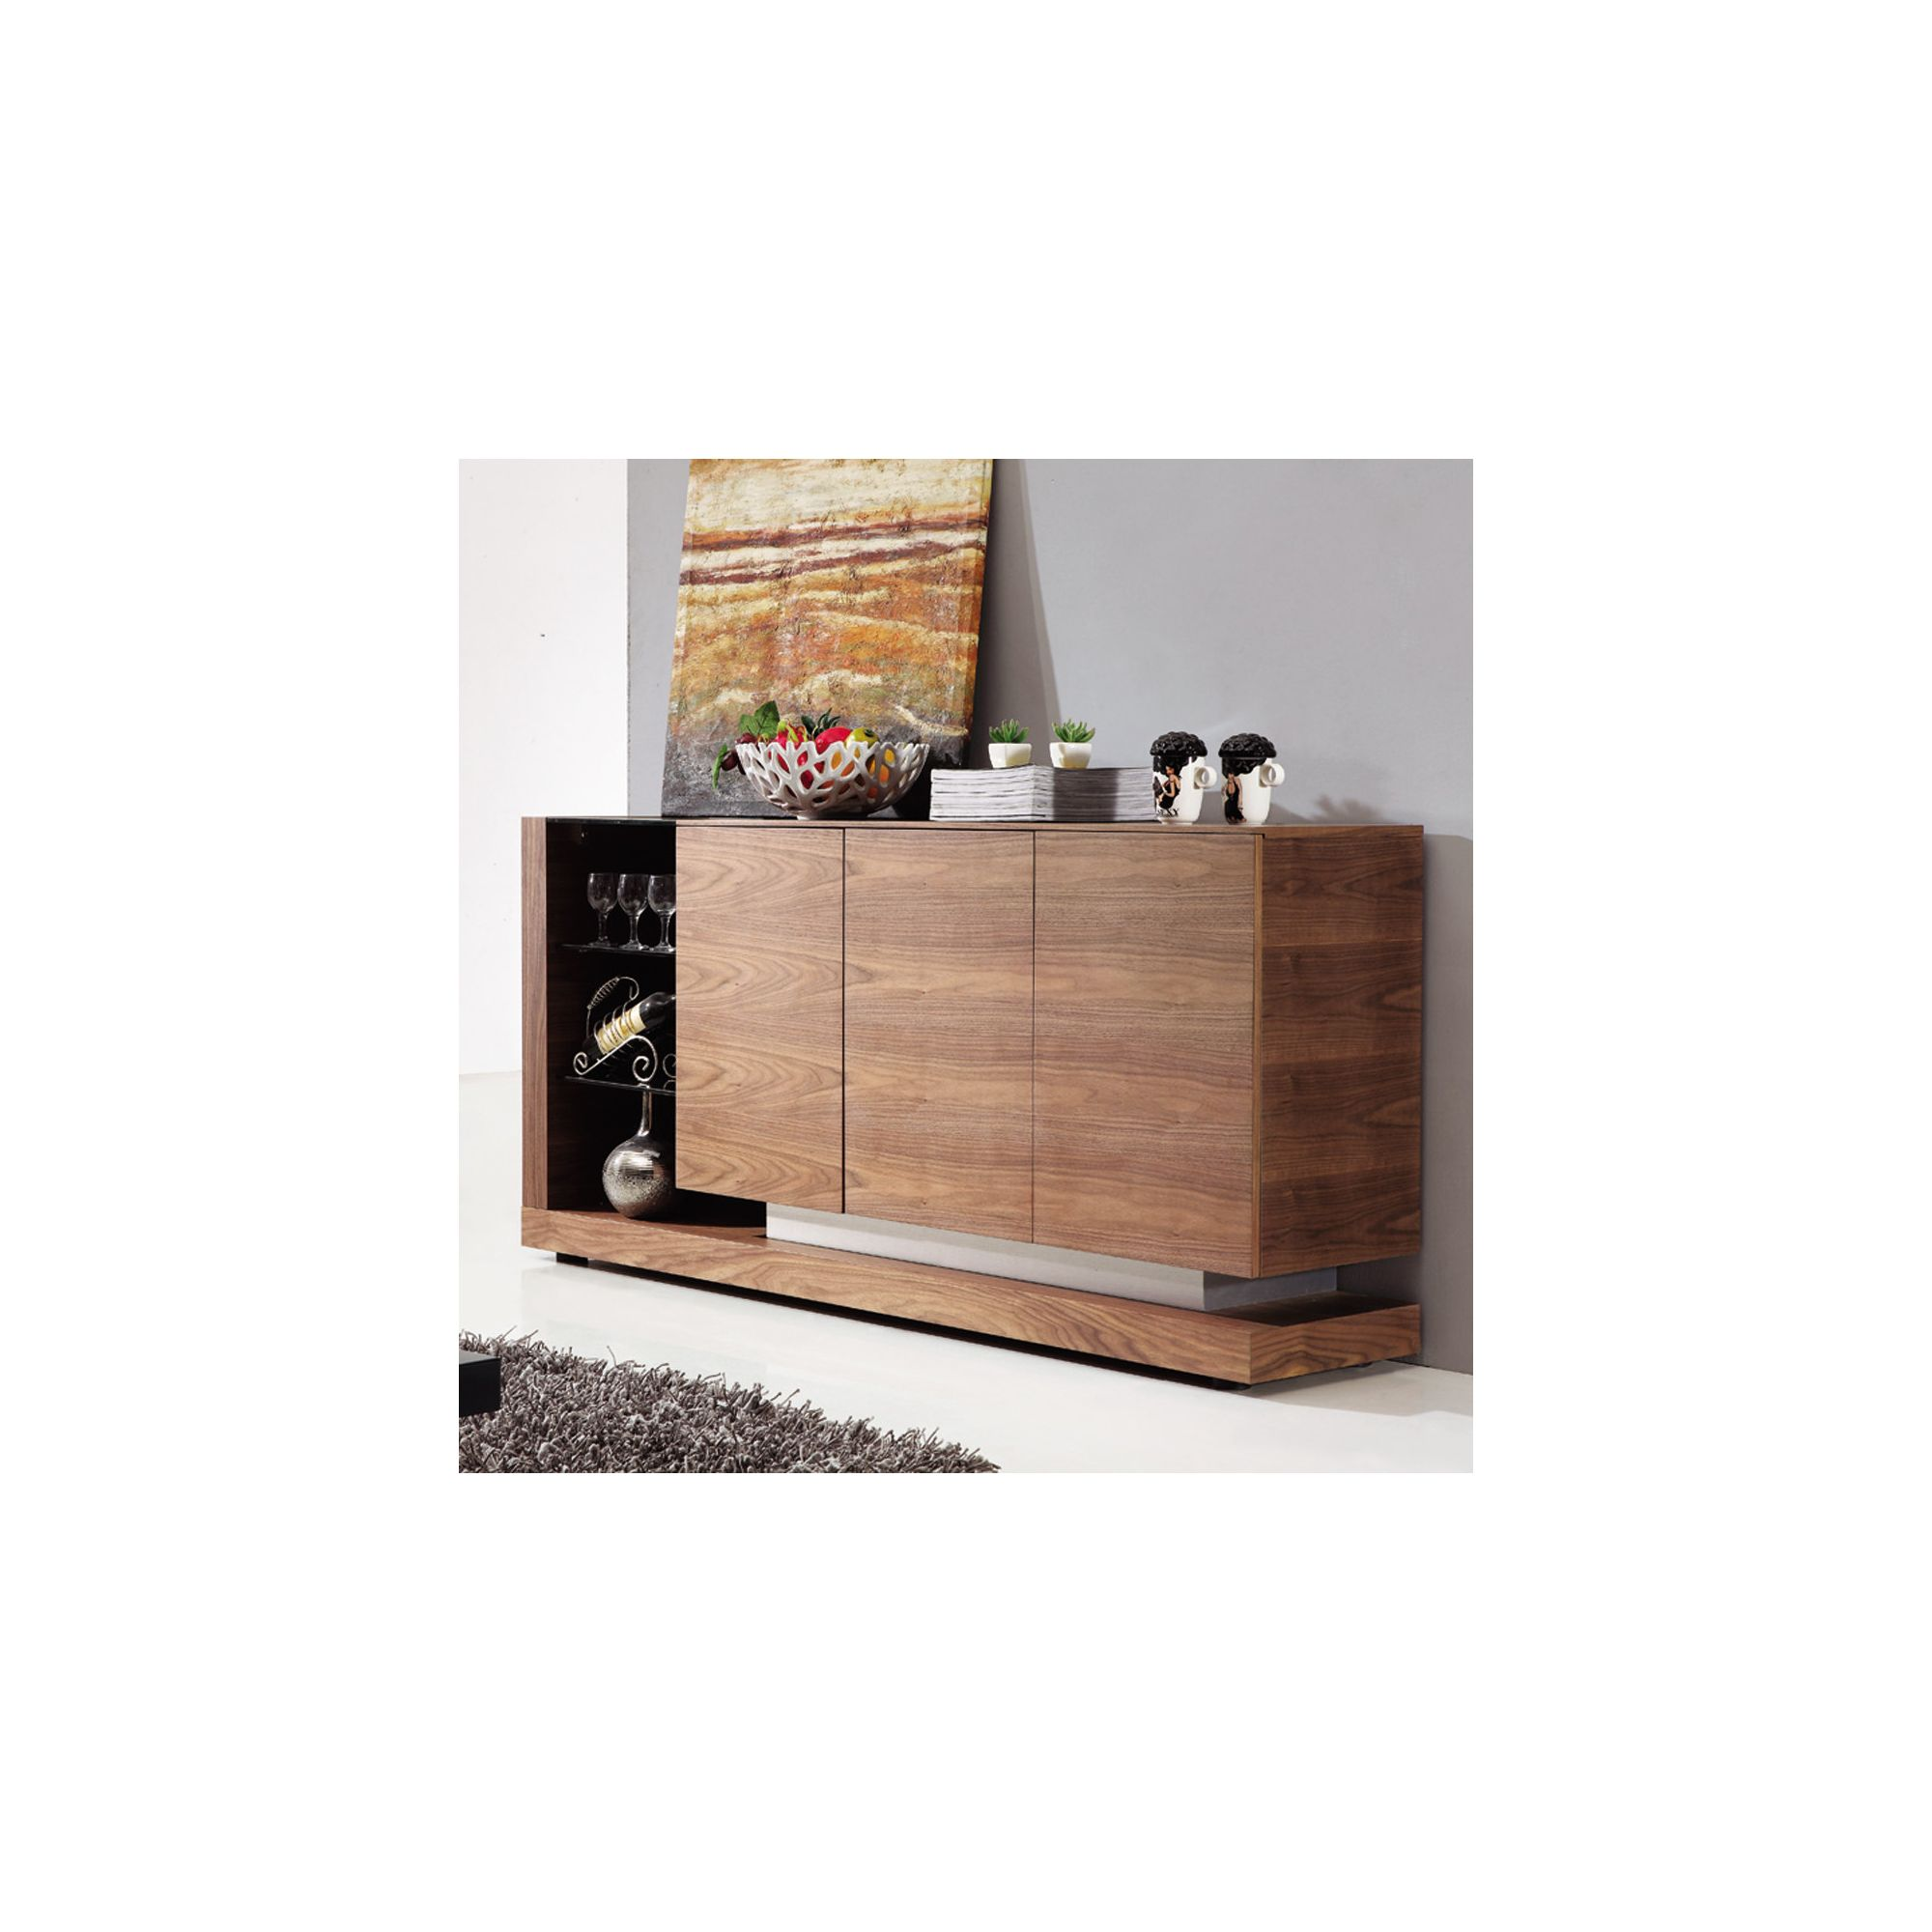 Giomani Designs Walnut Glass Sideboard at Tesco Direct